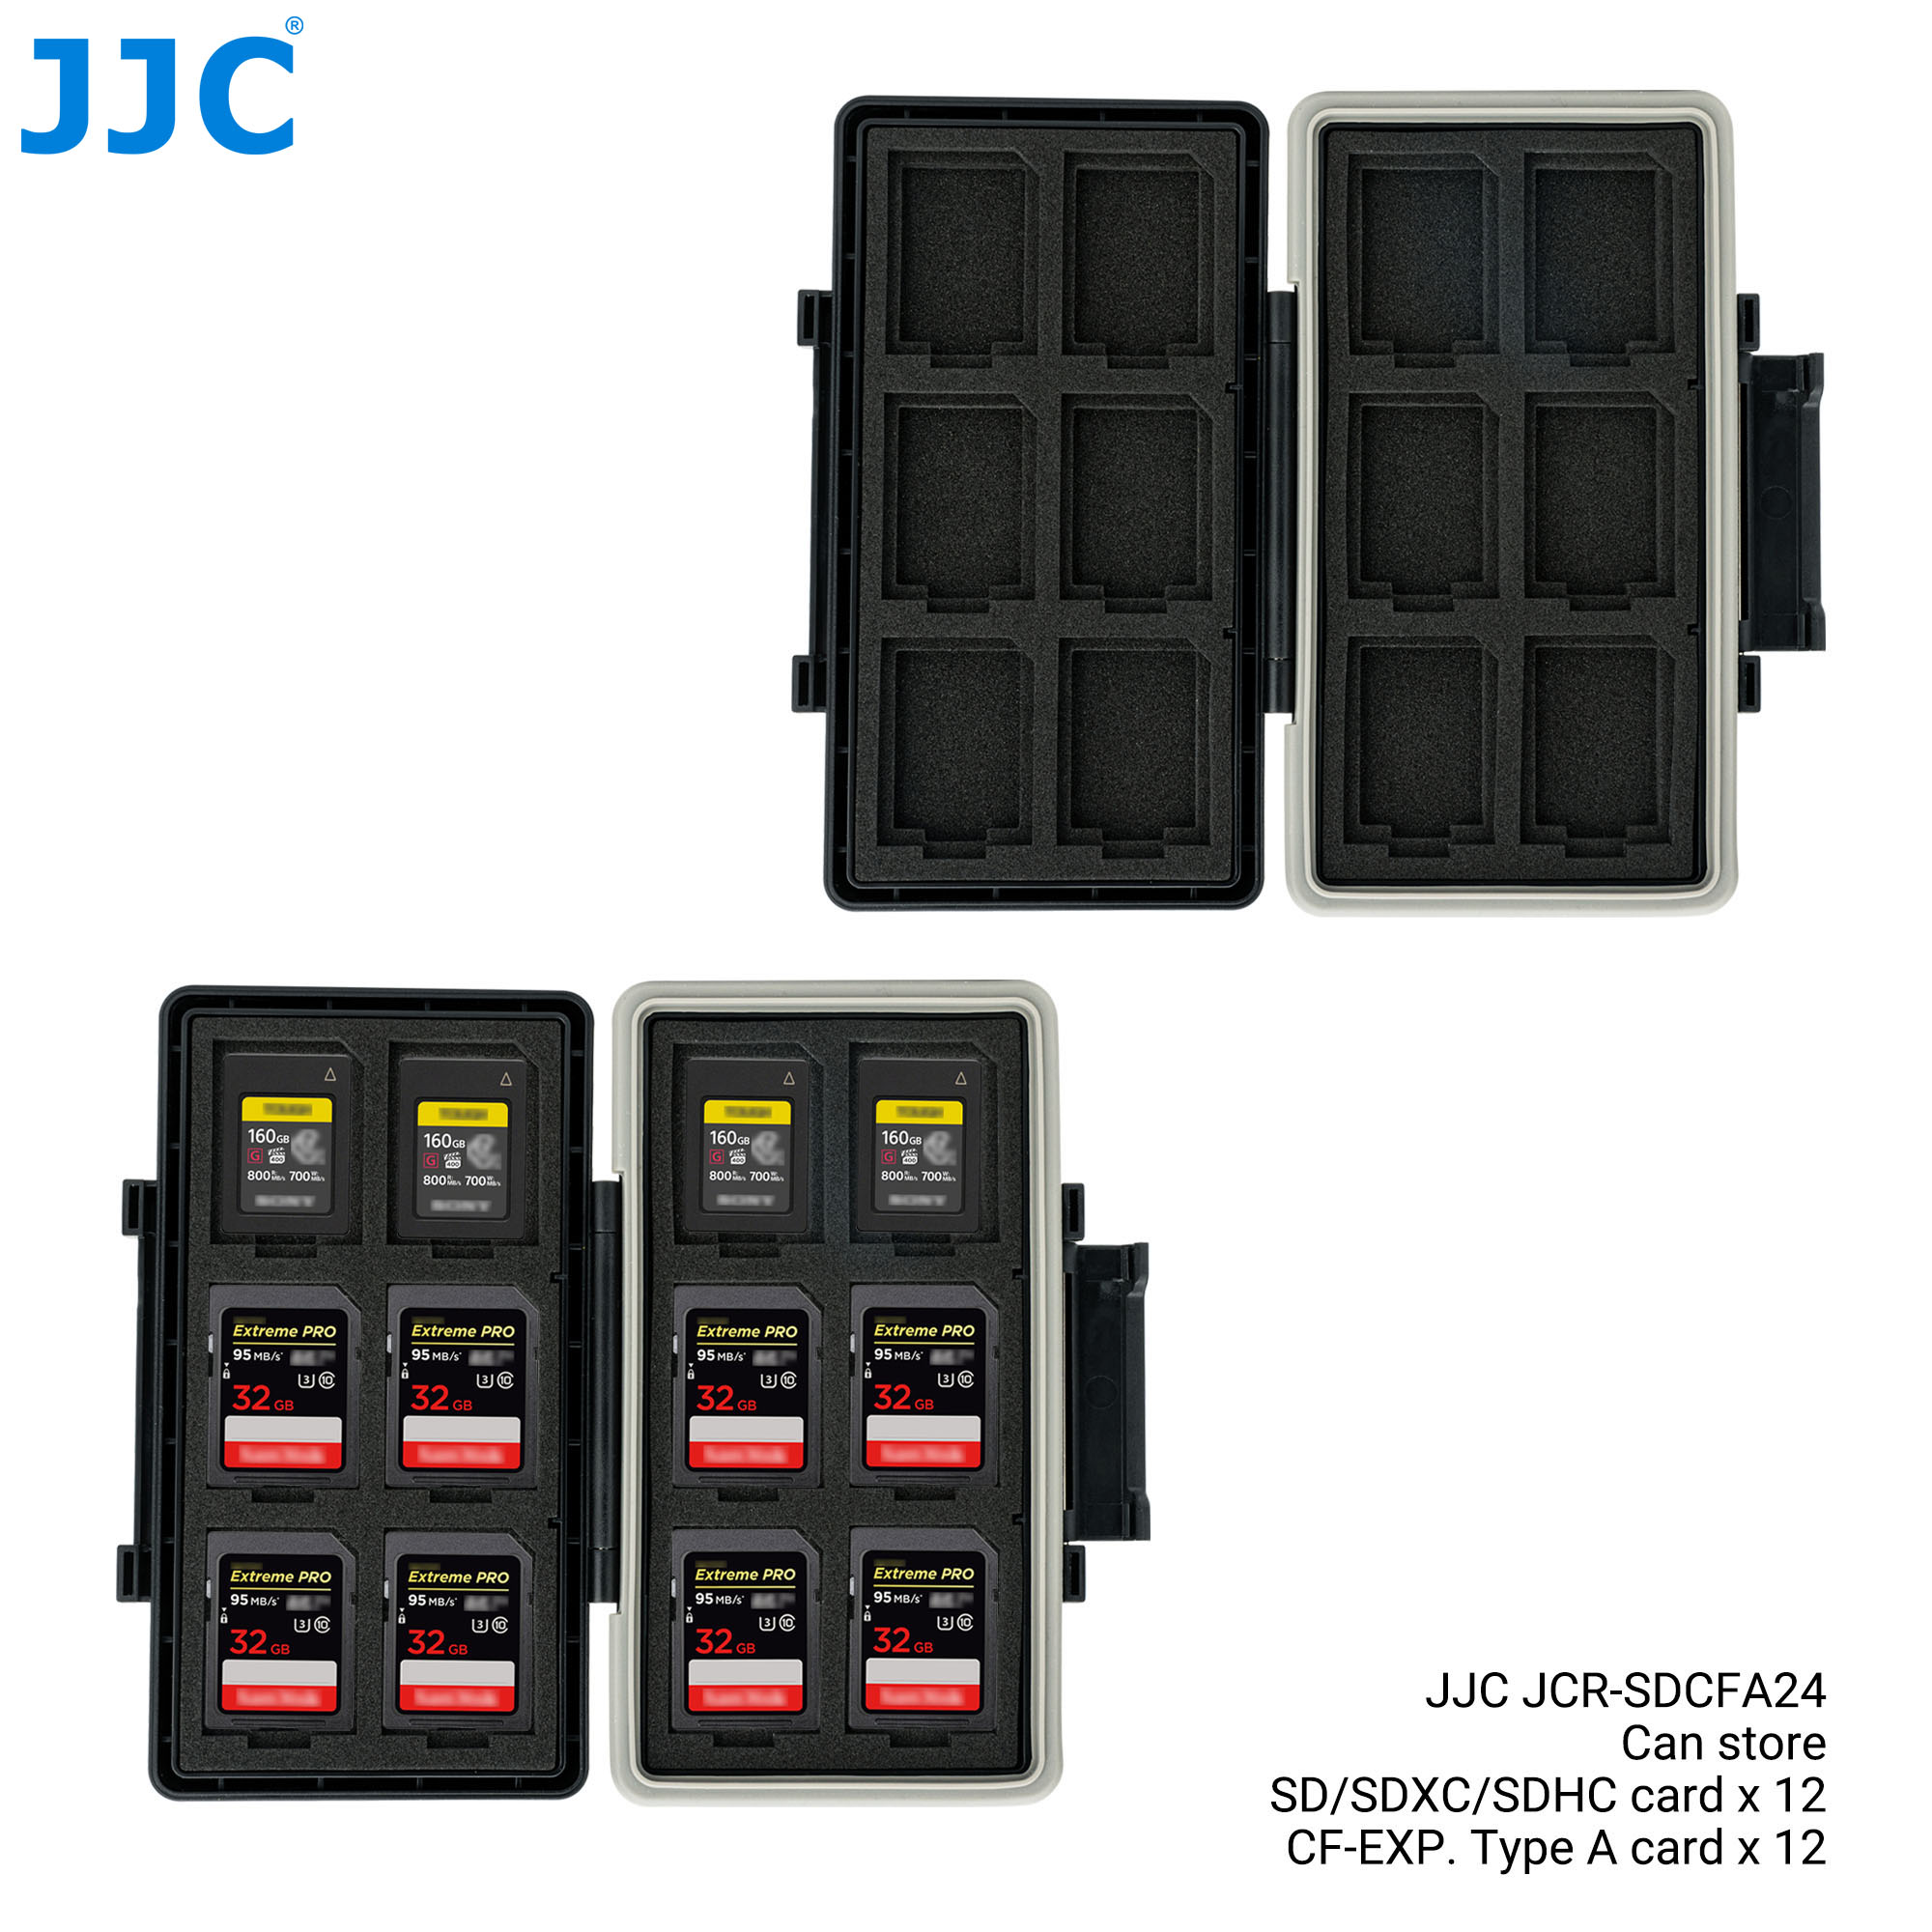 JJC 24 Slots Waterproof Memory Card Case Holder Wallet Organizer for 12 SD SDHC SDXC 12 CFexpress Type-A Card Storage Box Keeper